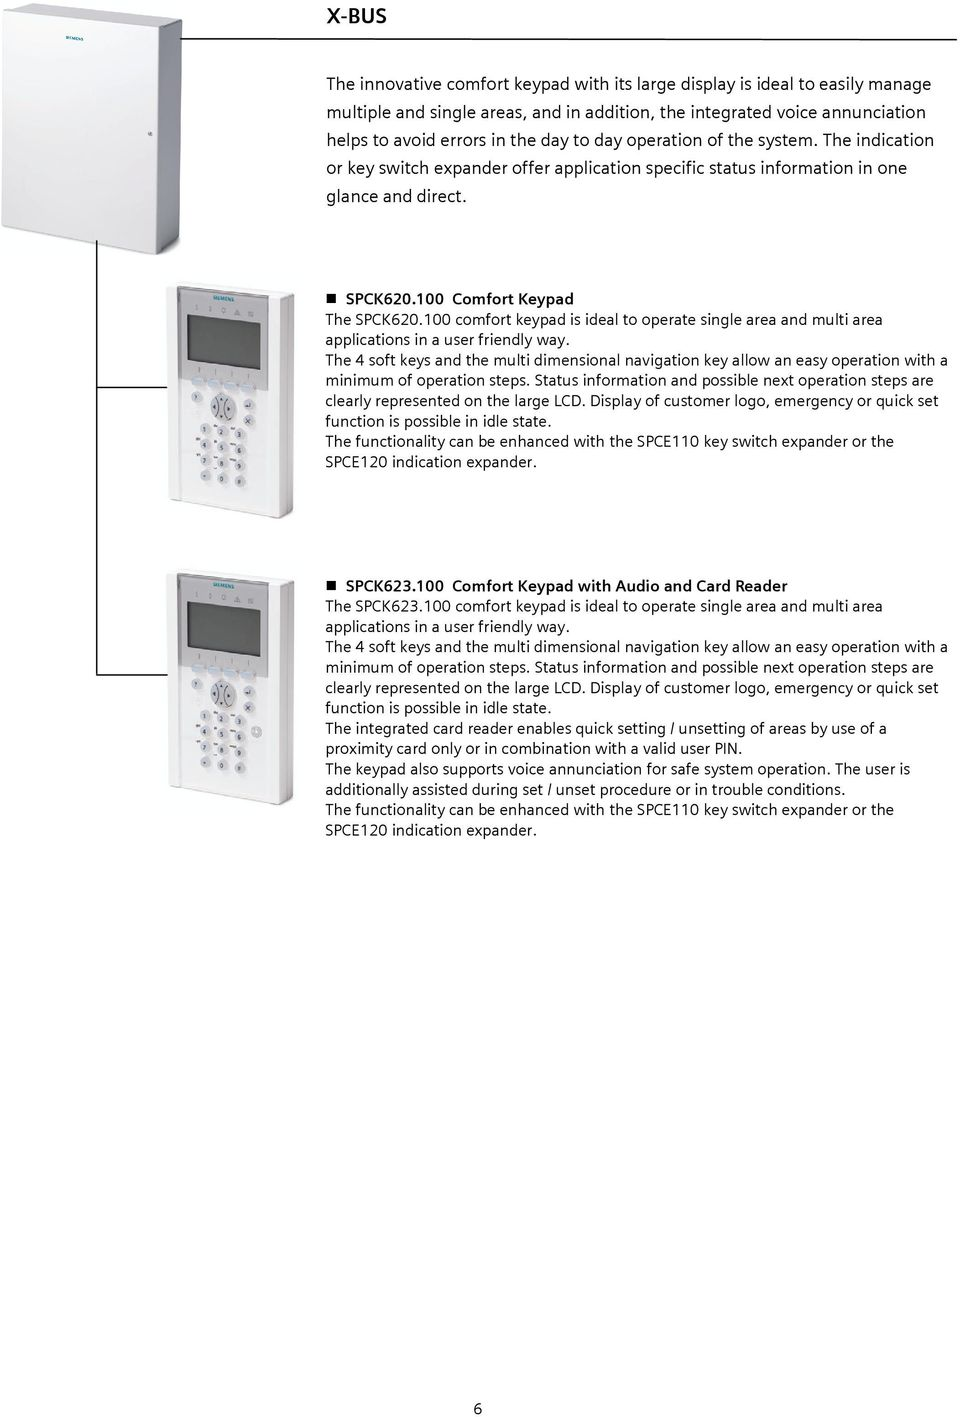 100 comfort keypad is ideal to operate single area and multi area applications in a user friendly way.